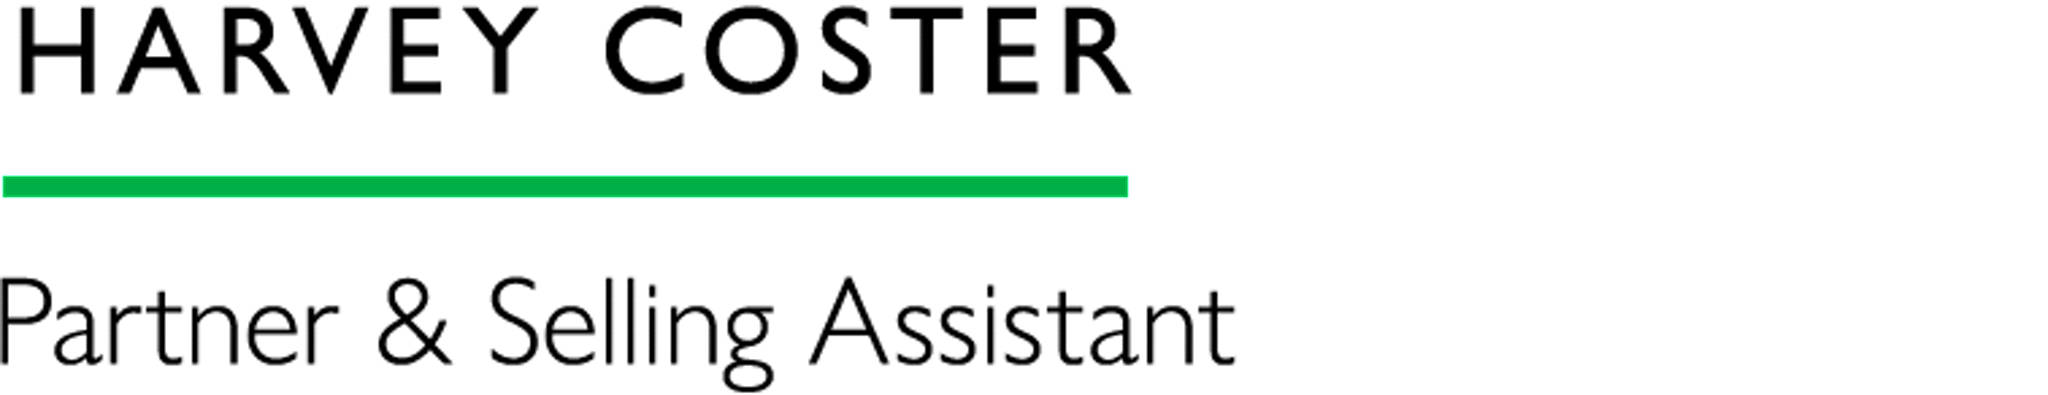 Harvey Coster - Partner & Selling Assistant